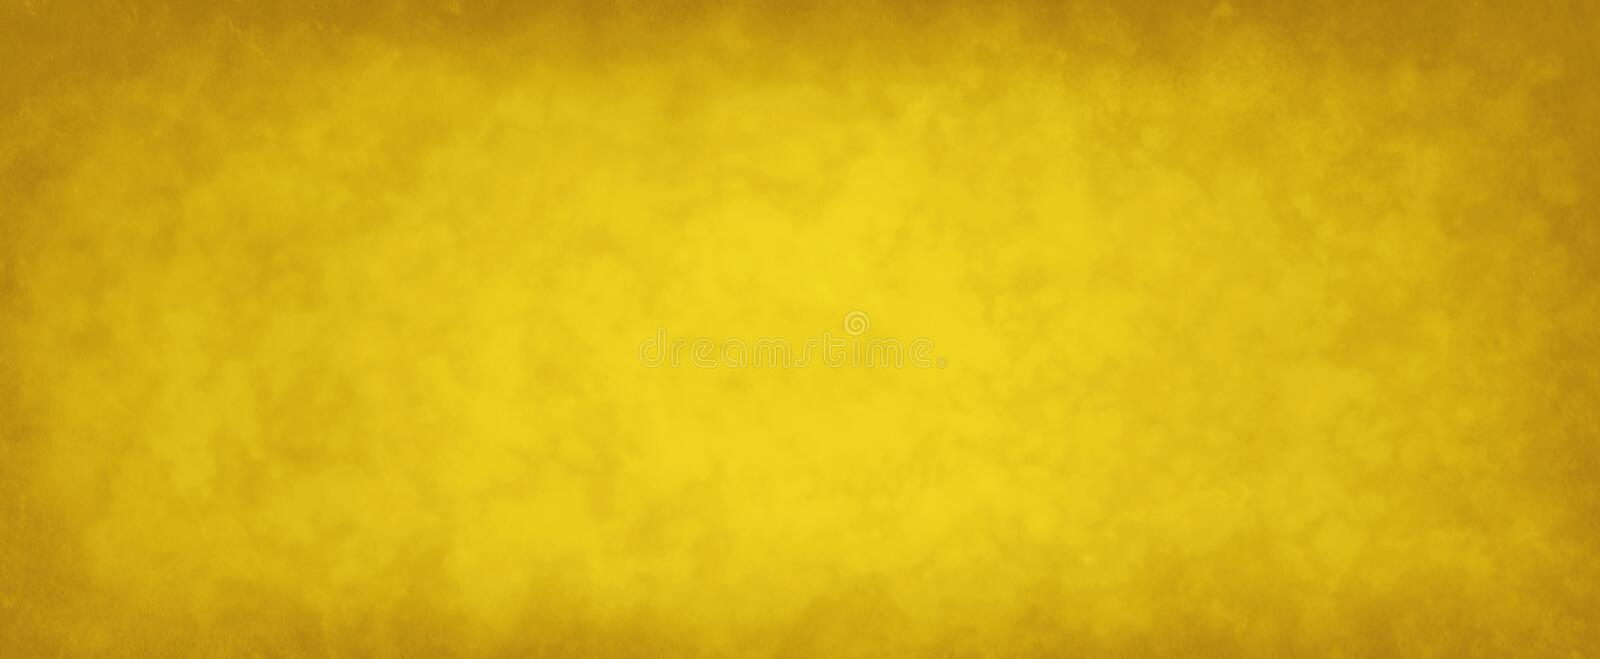 Gold texture background, yellow vintage paper or textured shiny painted metal in mottled textured antique color stock photography